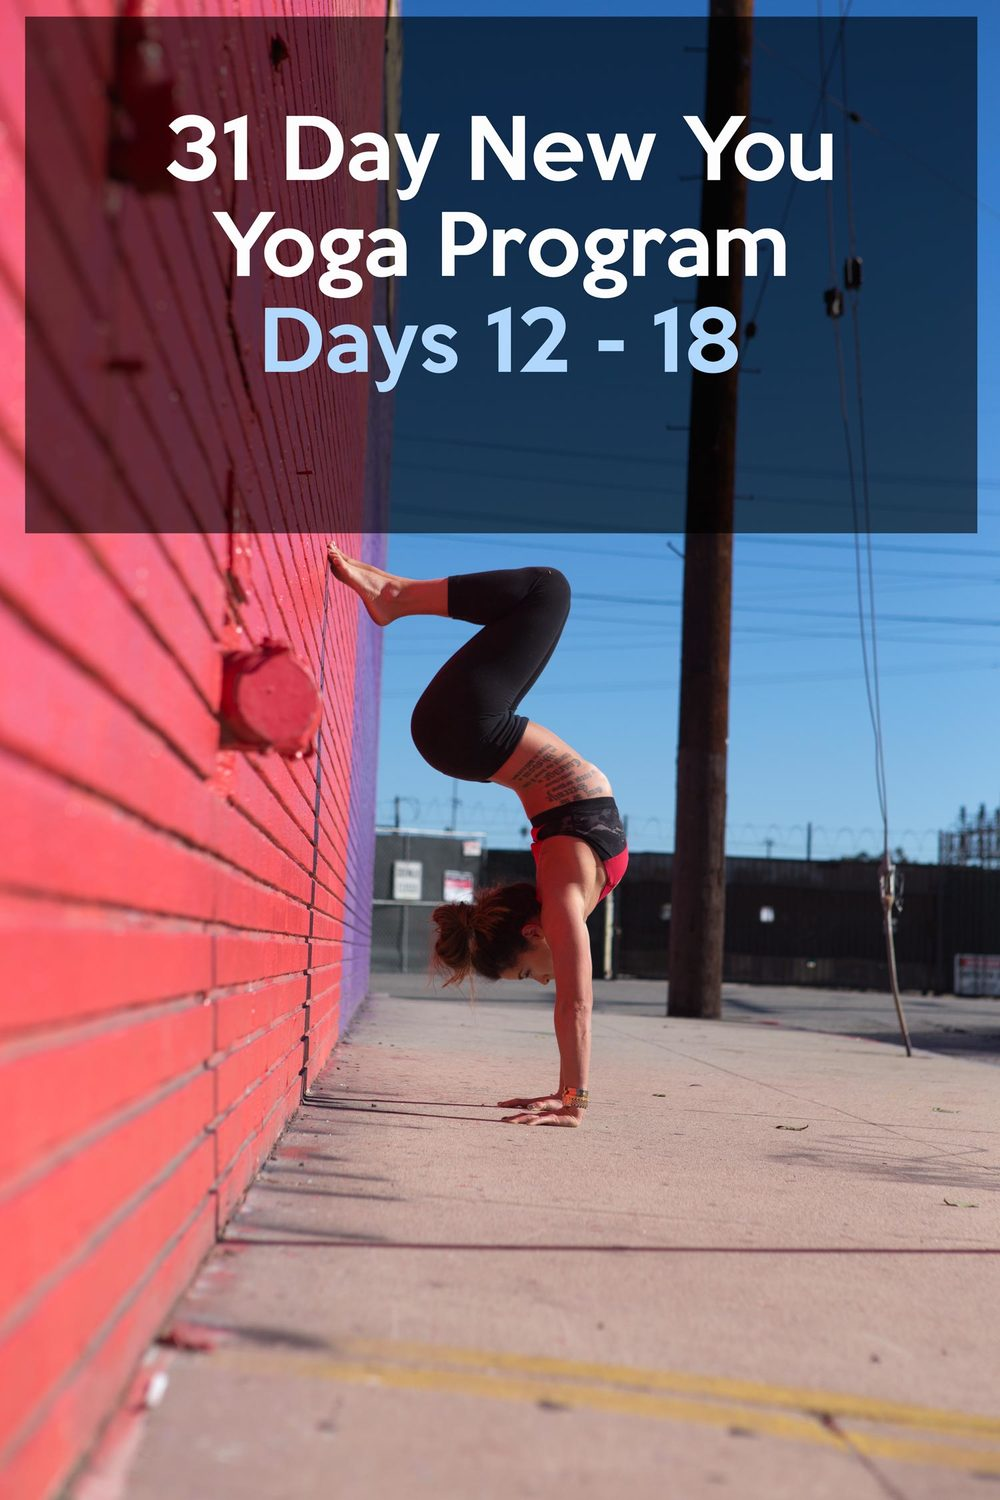 Pin now and join in the 31 Day New You Yoga Program, Days 12 - 18 of the schedule. Wearing: alo yoga bra, lululemon leggings